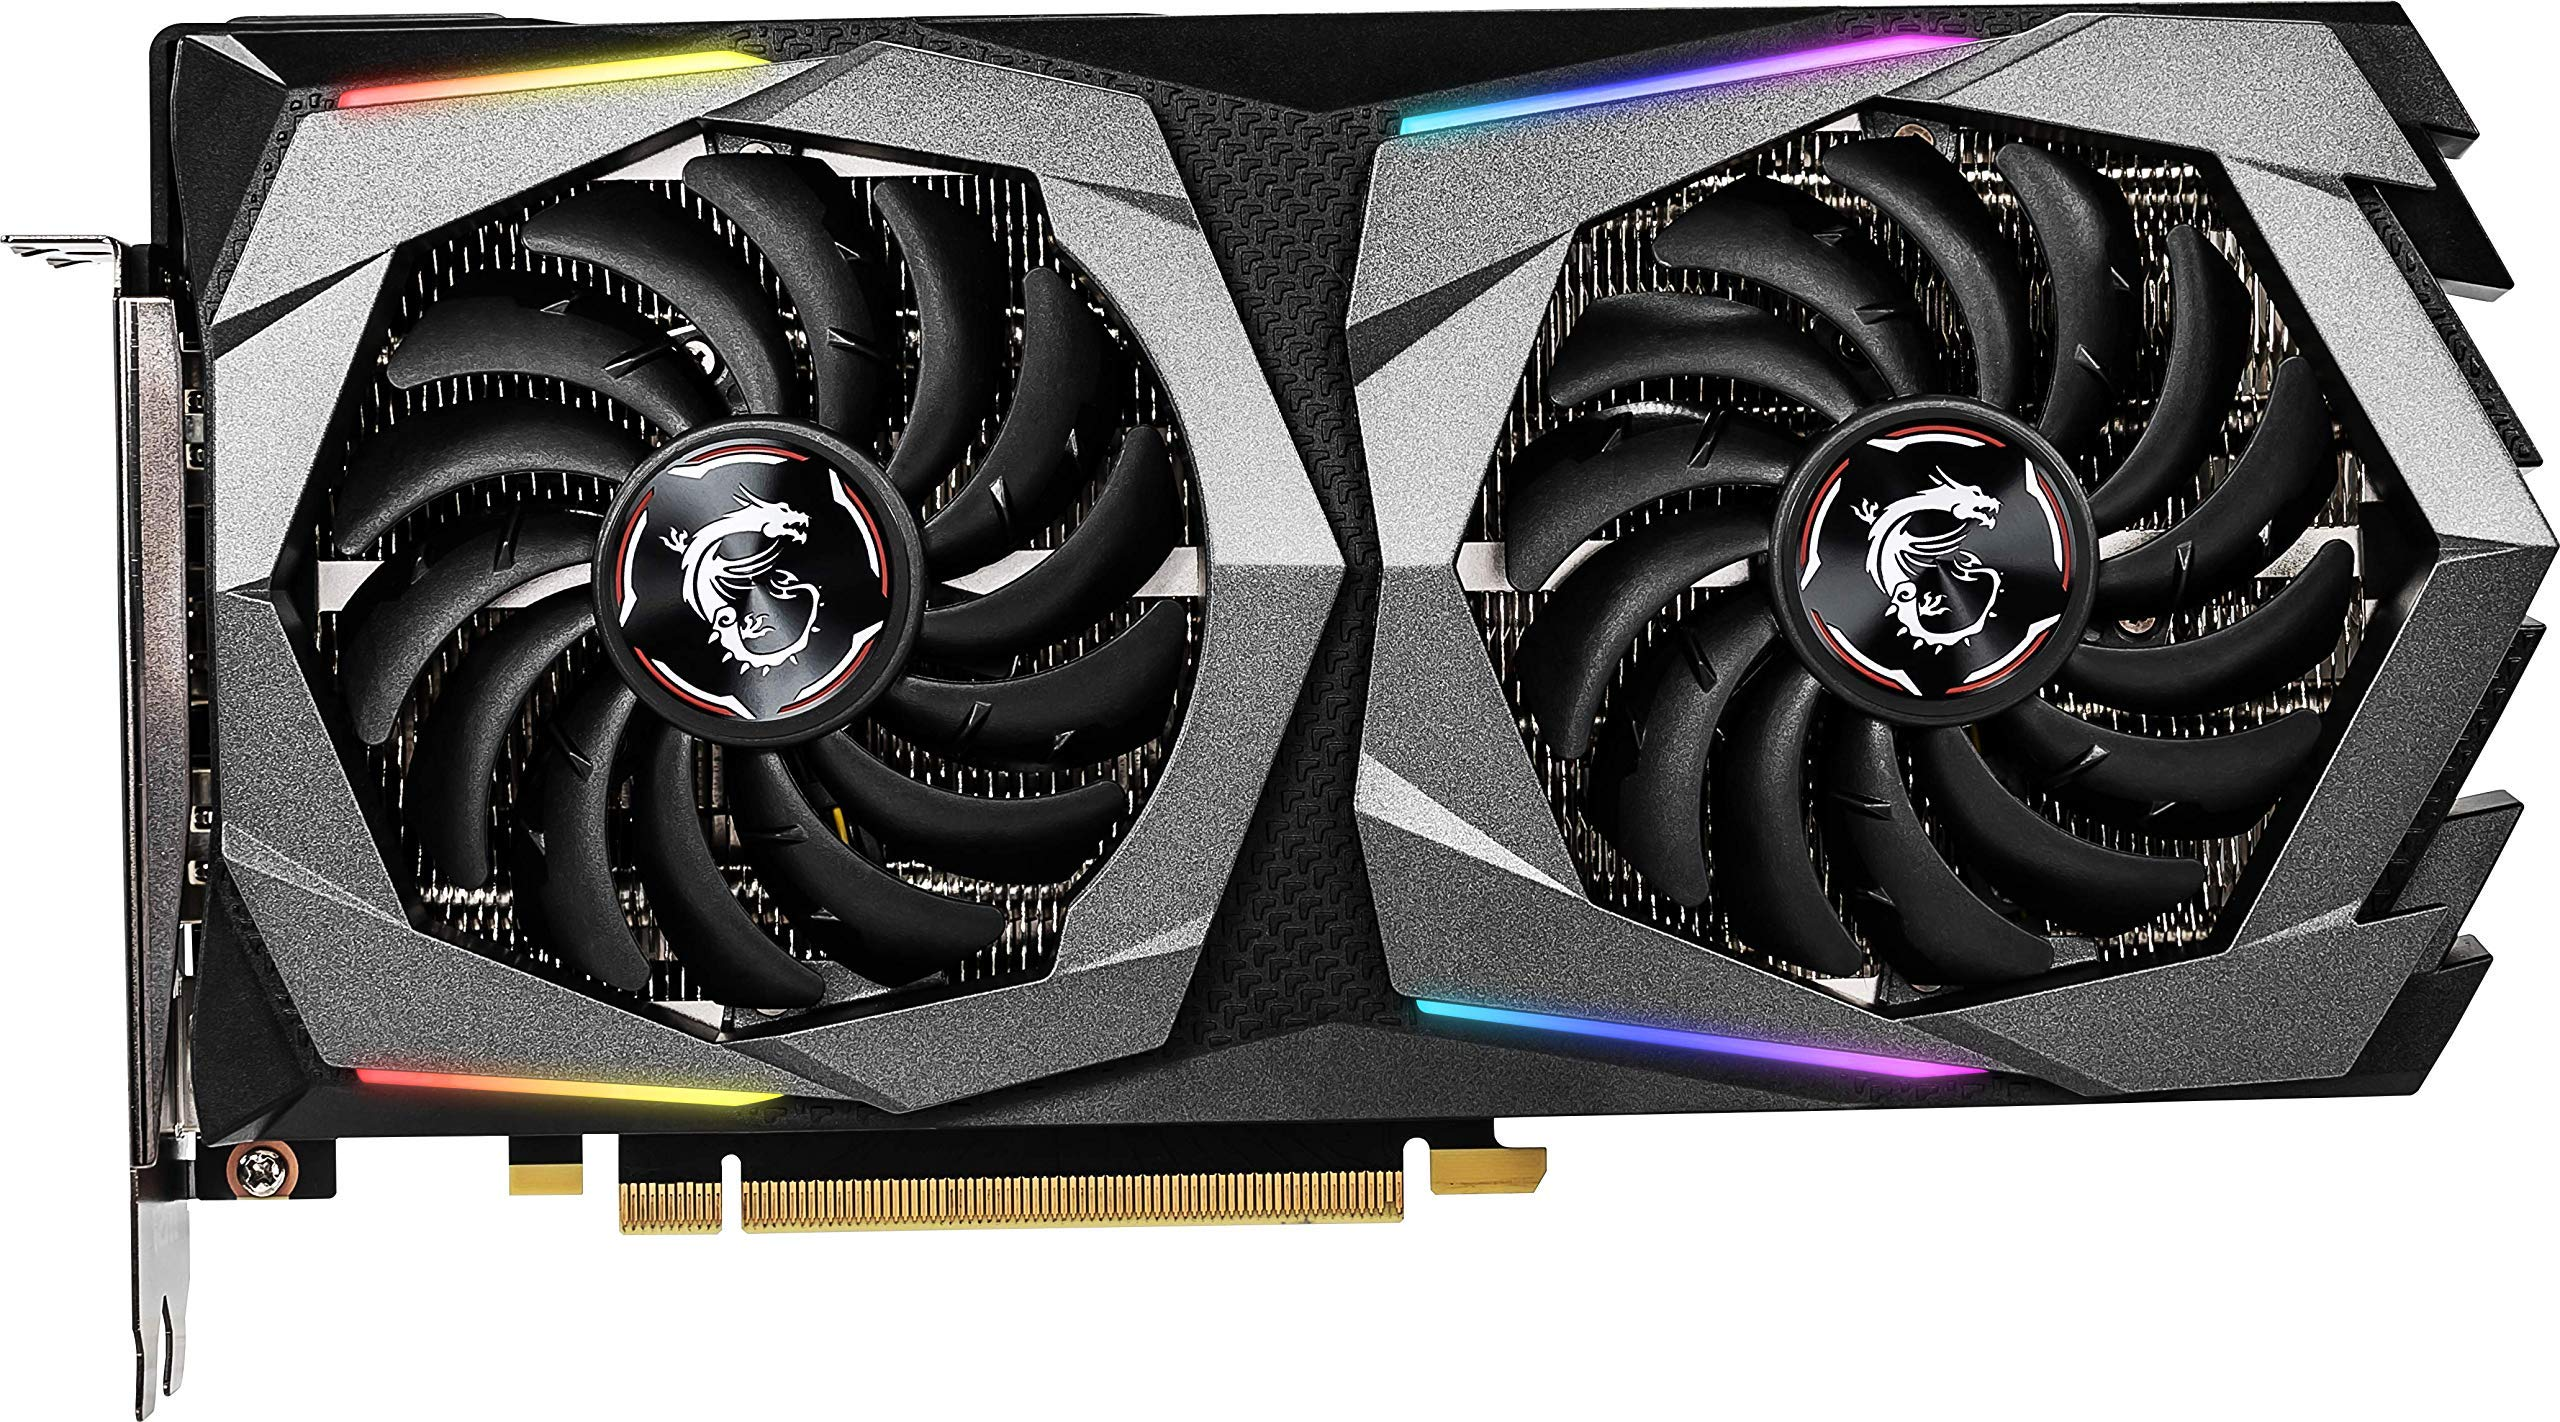 MSI Gaming GeForce RTX 2060 Super 8GB GDRR6 256-bit HDMI/DP G-SYNC Turing Architecture Overclocked Graphics Card (RTX 2060 Super Gaming X) by MSI